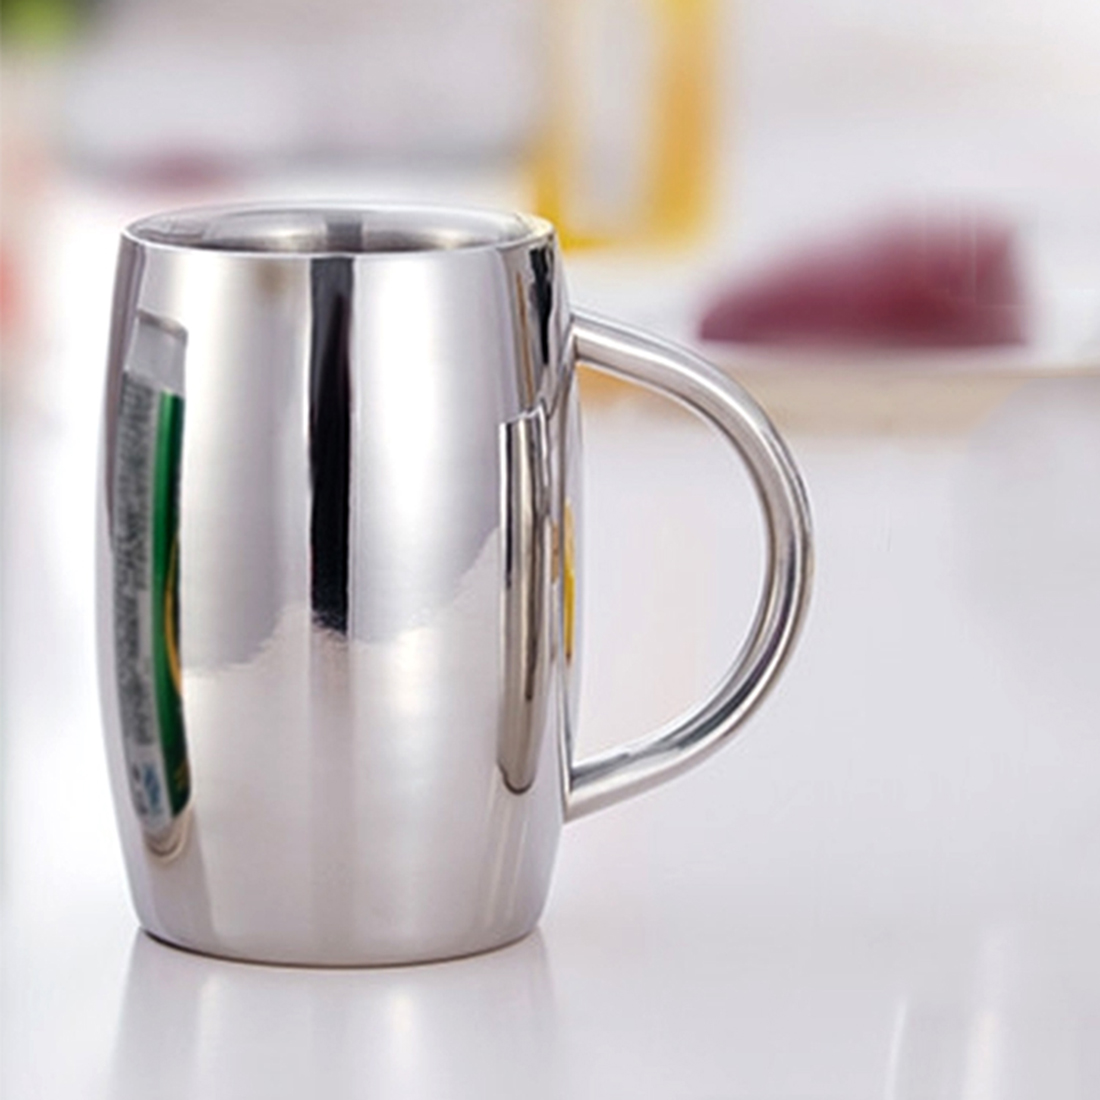 1pcs 410ml 300ml Stainless Steel Mug Double Wall Air beer cup Insulated Beverage Coffee Mug